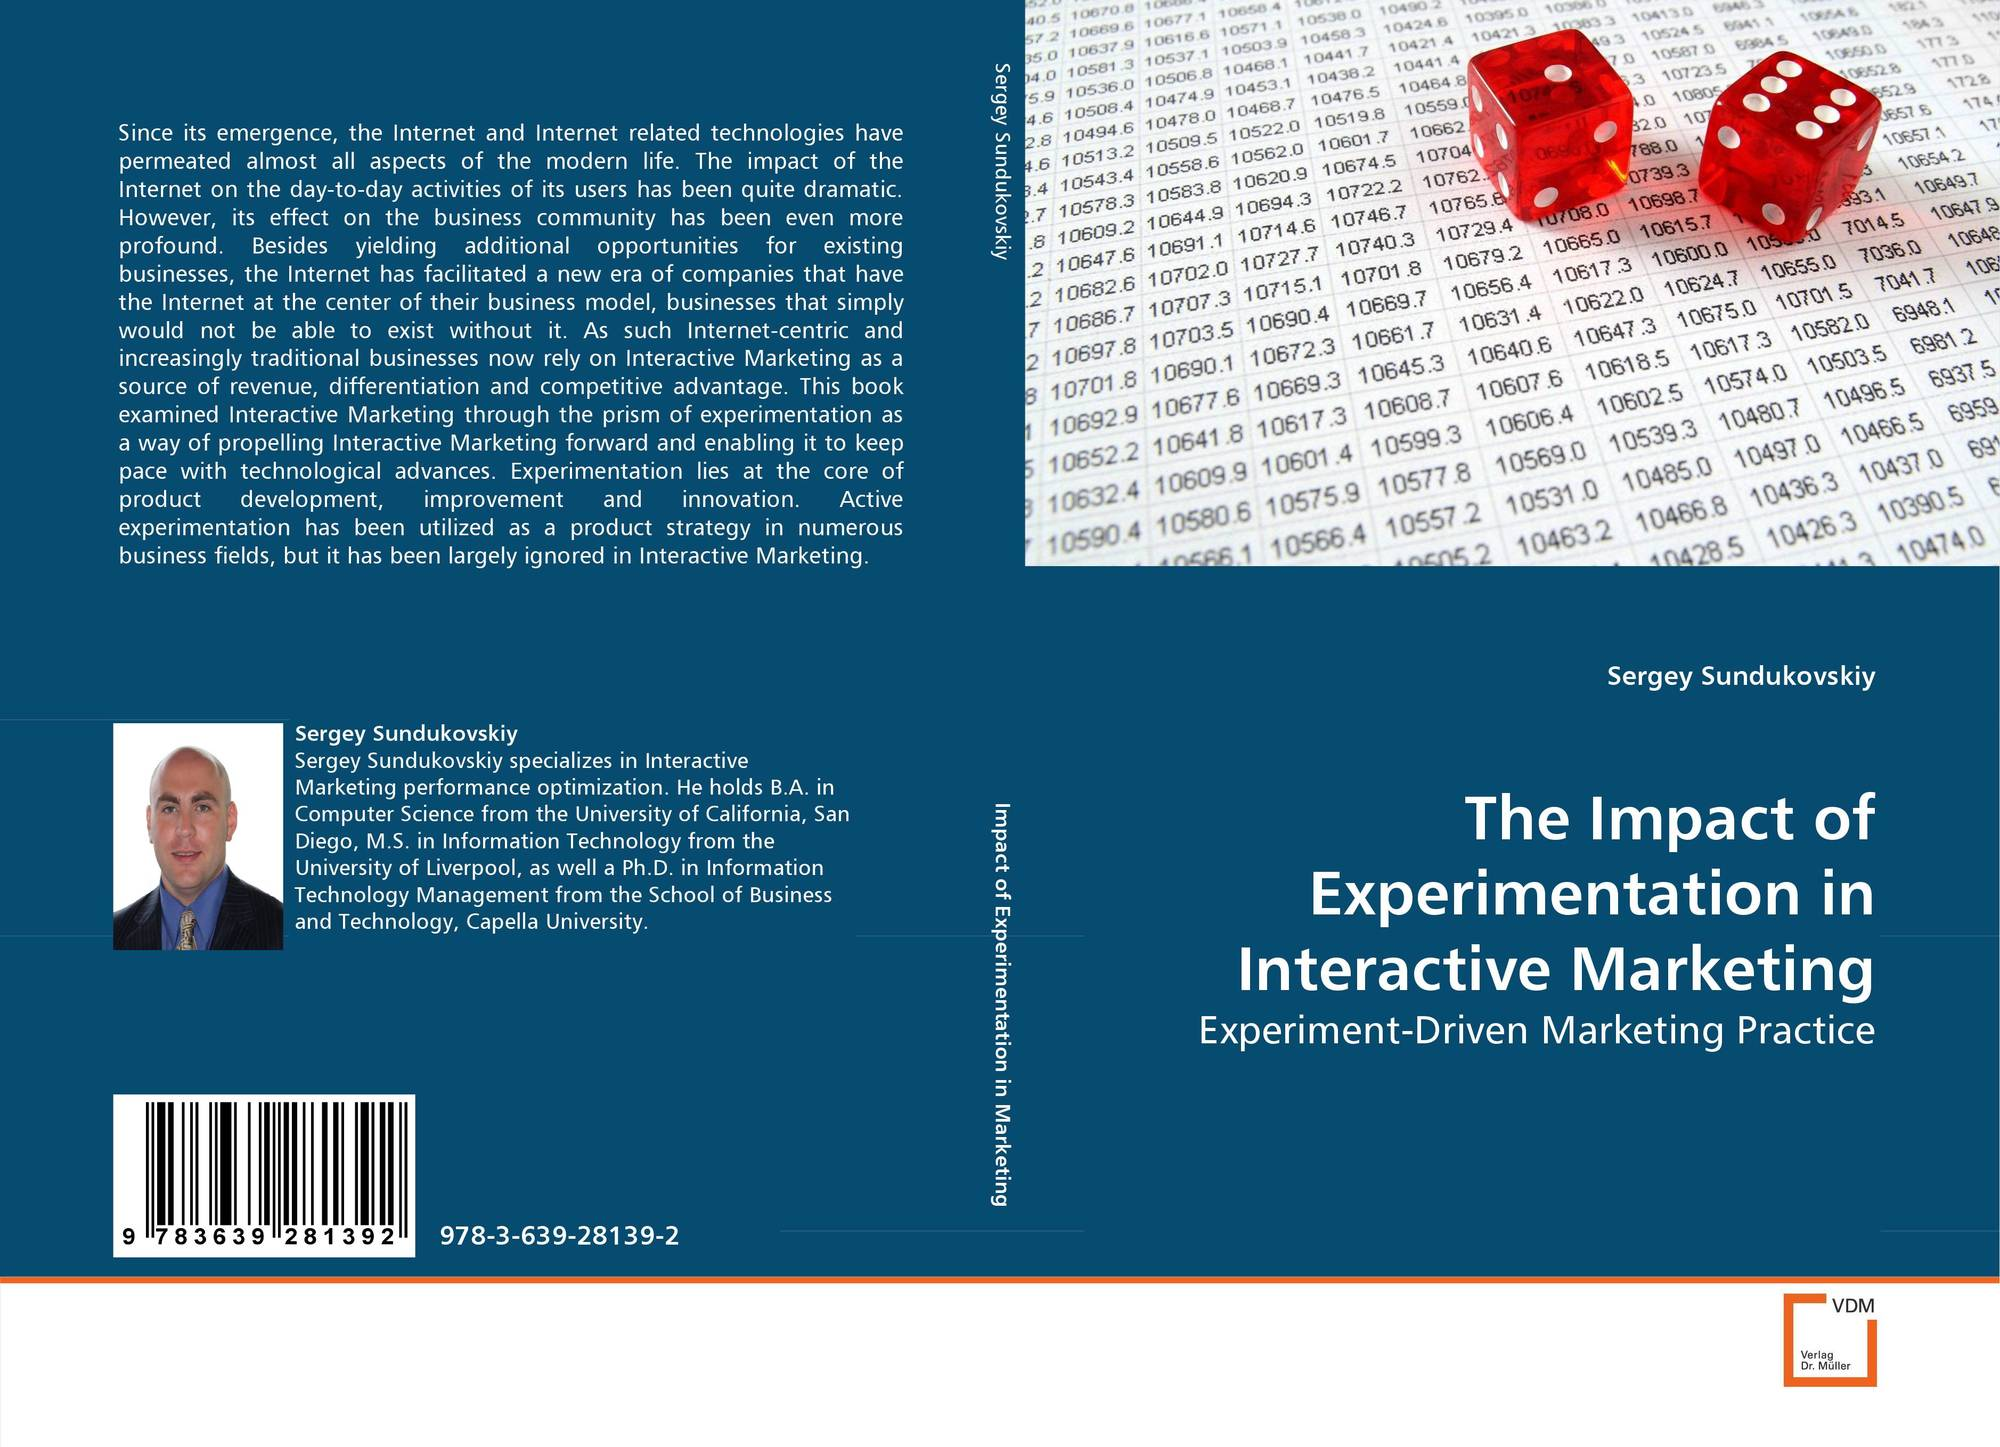 an analysis of social experiment in clothings impact on social interactions Within sociology units of analysis can take several forms and social science research often involves more than one sociologists who study cultural artifacts might be interested in understanding what a new trend in clothing, art, or music reveals about the contemporary values and norms of the society.